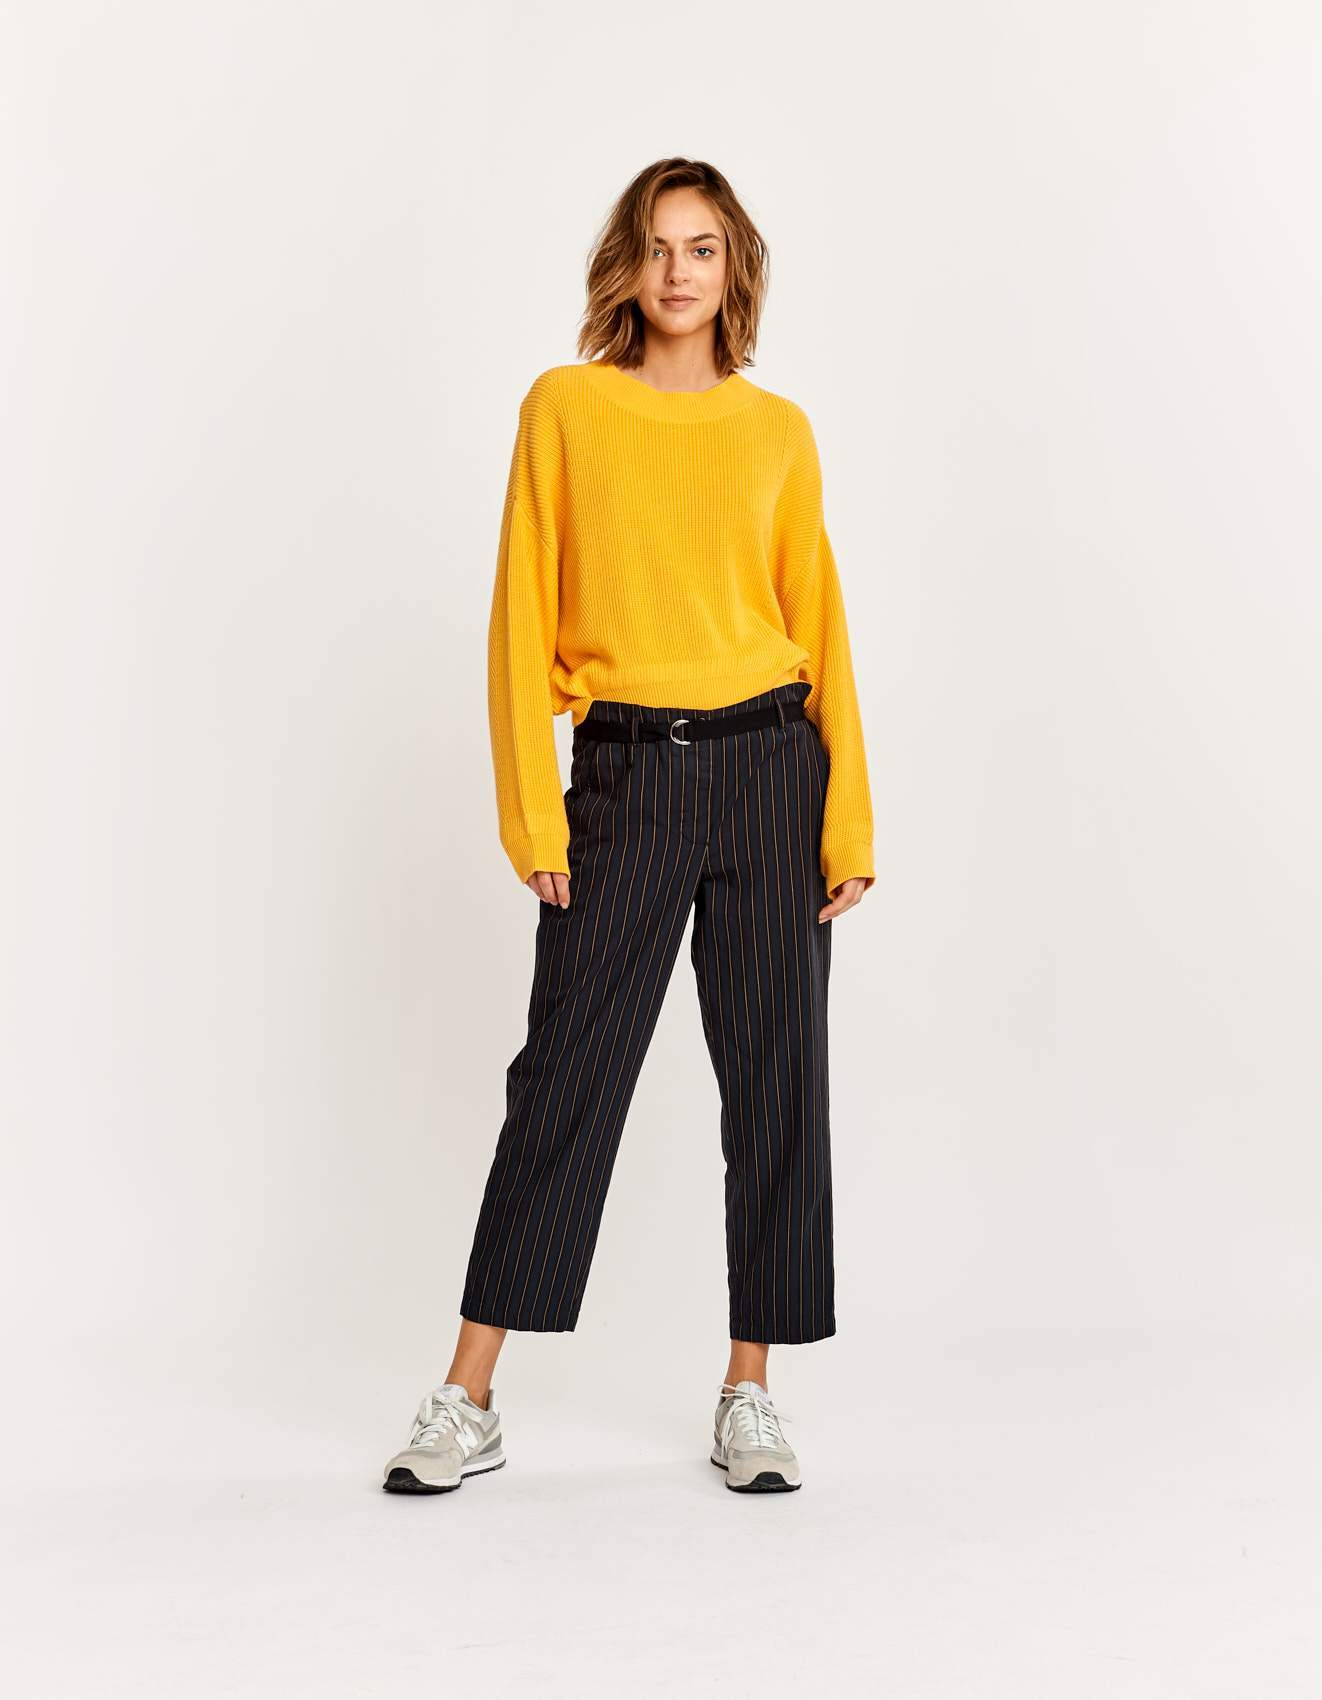 Bellerose striped straight leg pants for women